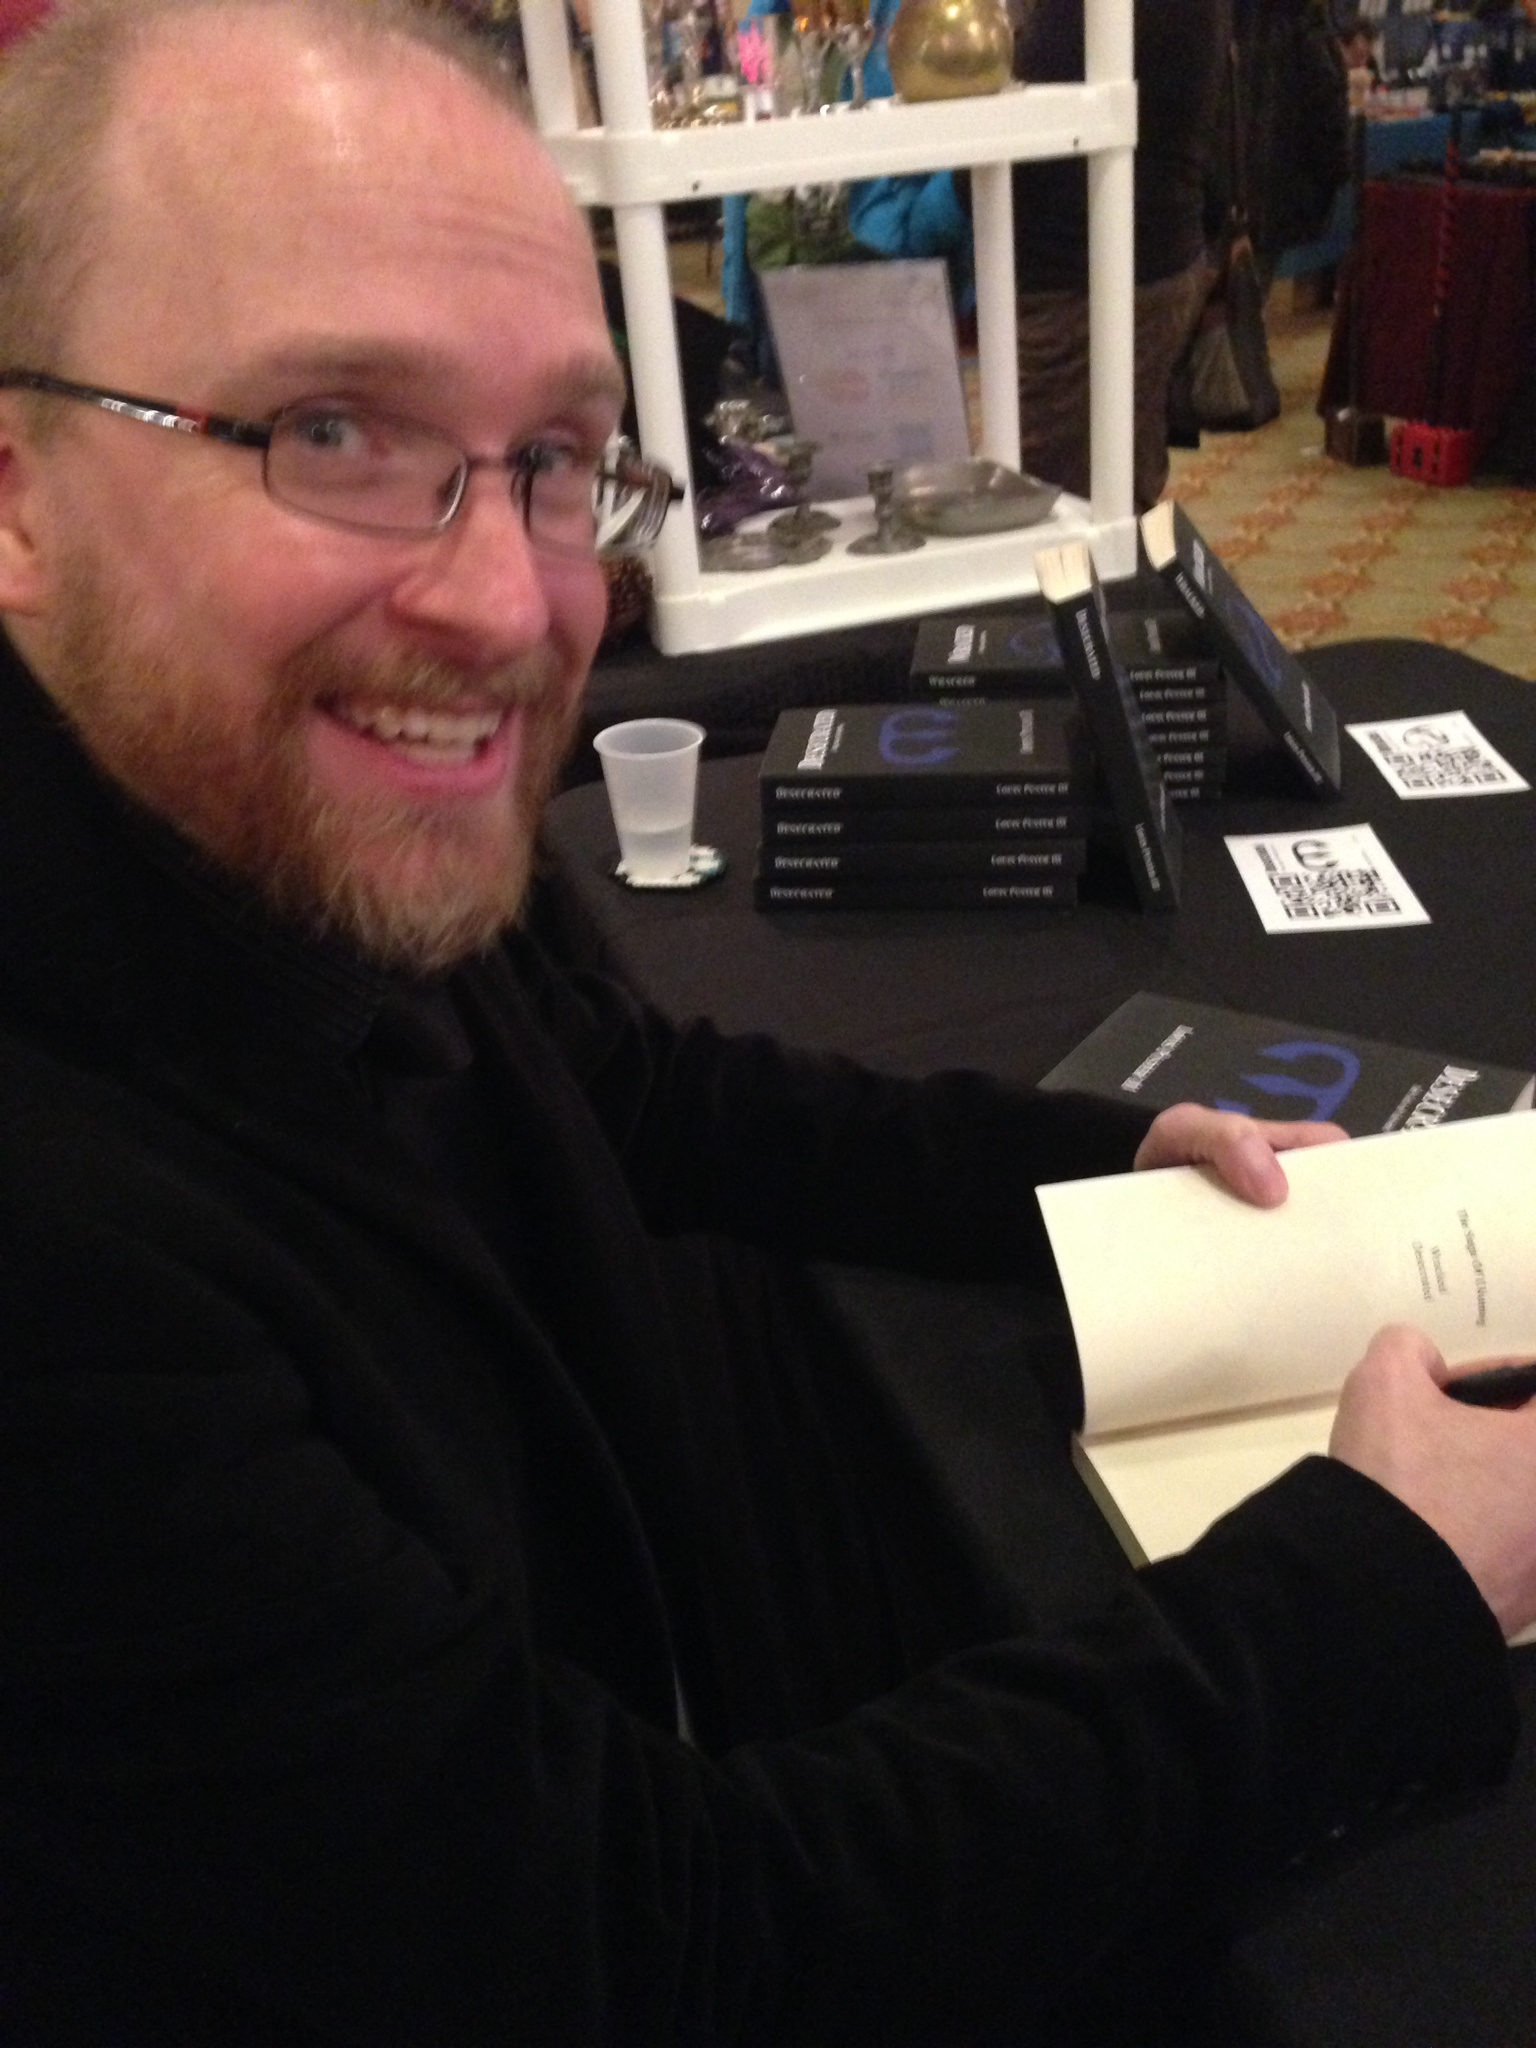 See how happy signing books makes me?